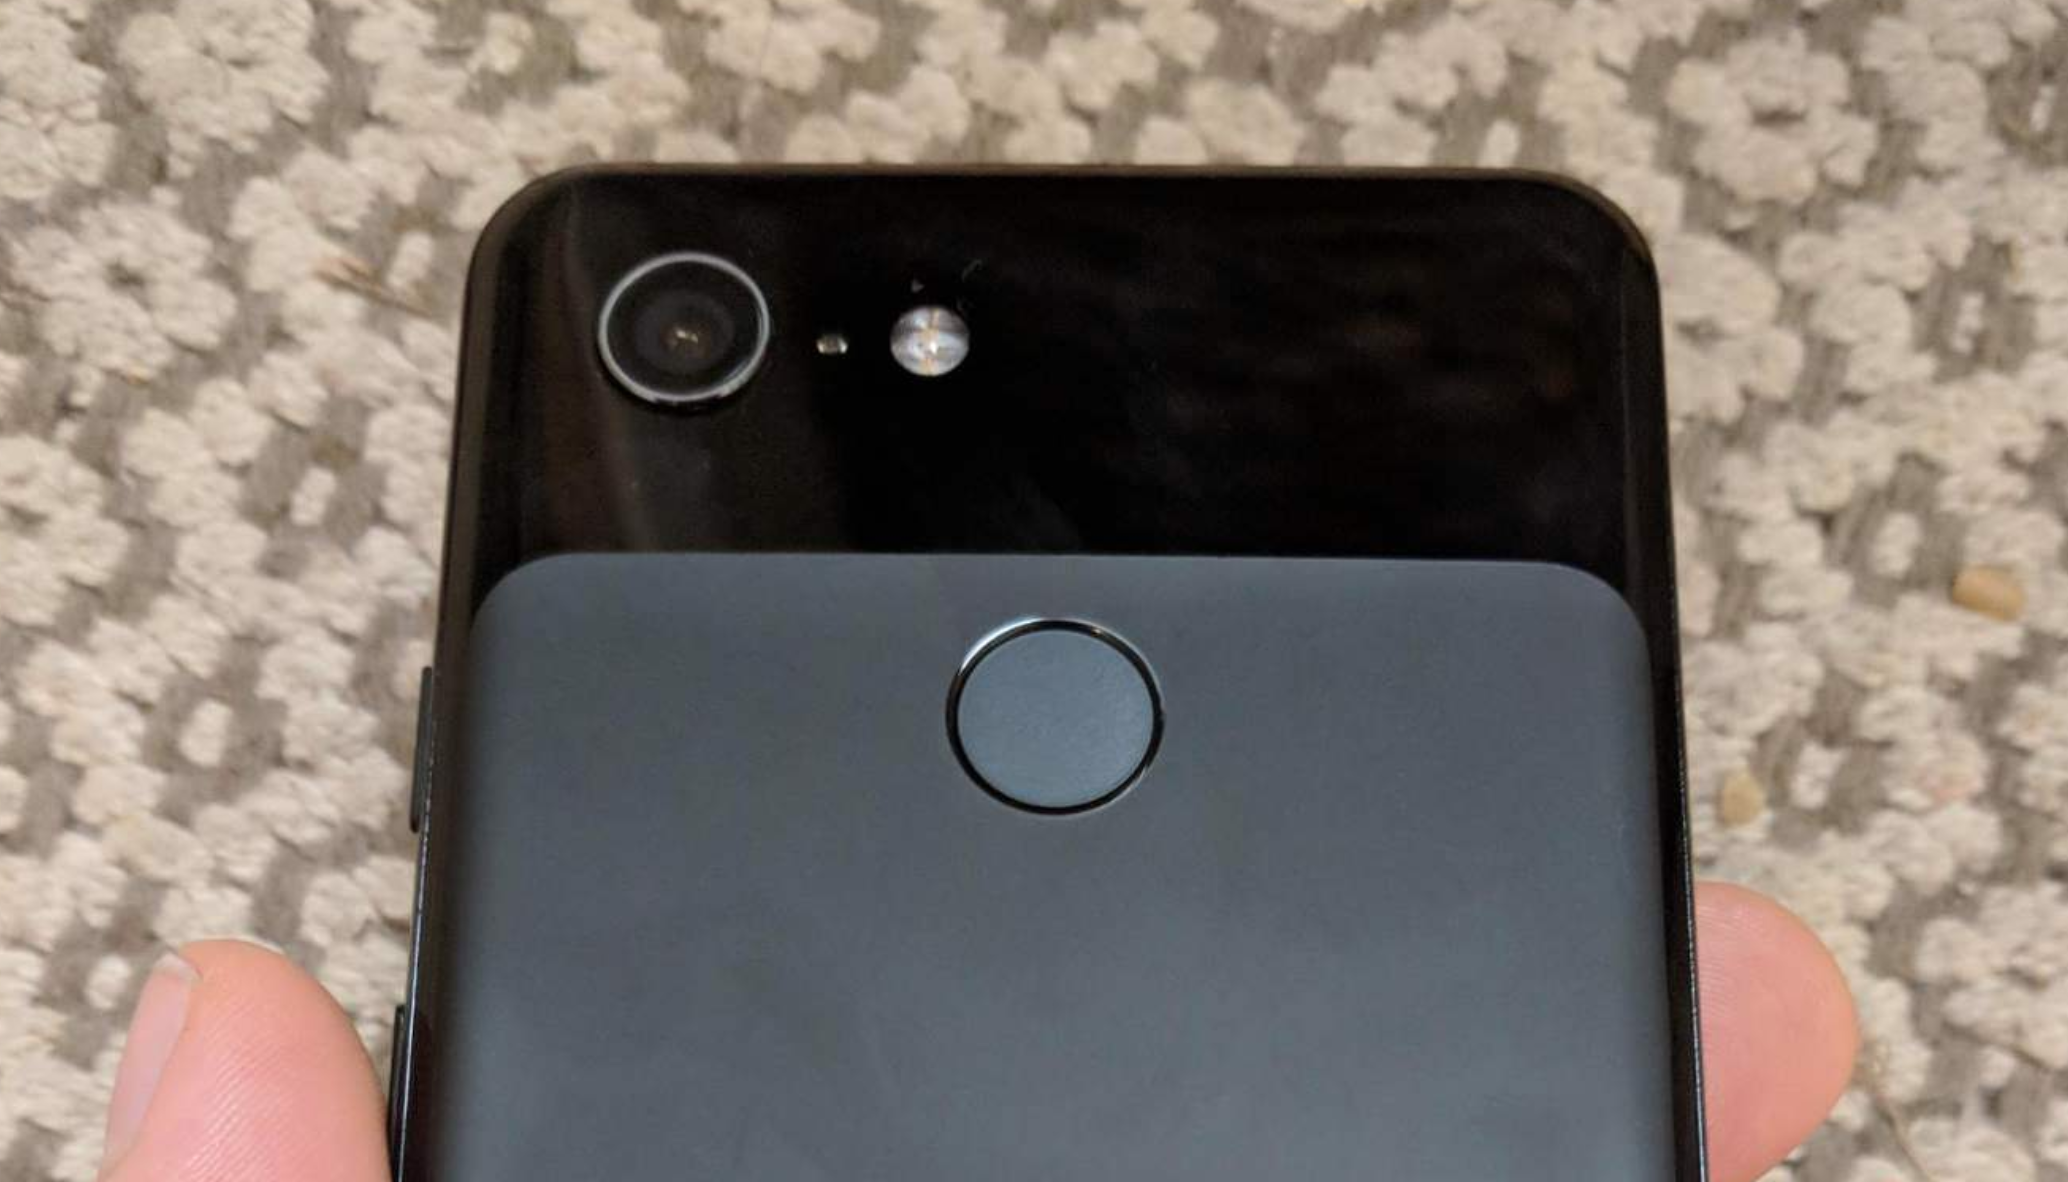 Google Pixel 3 AI camera features will include Top Shot